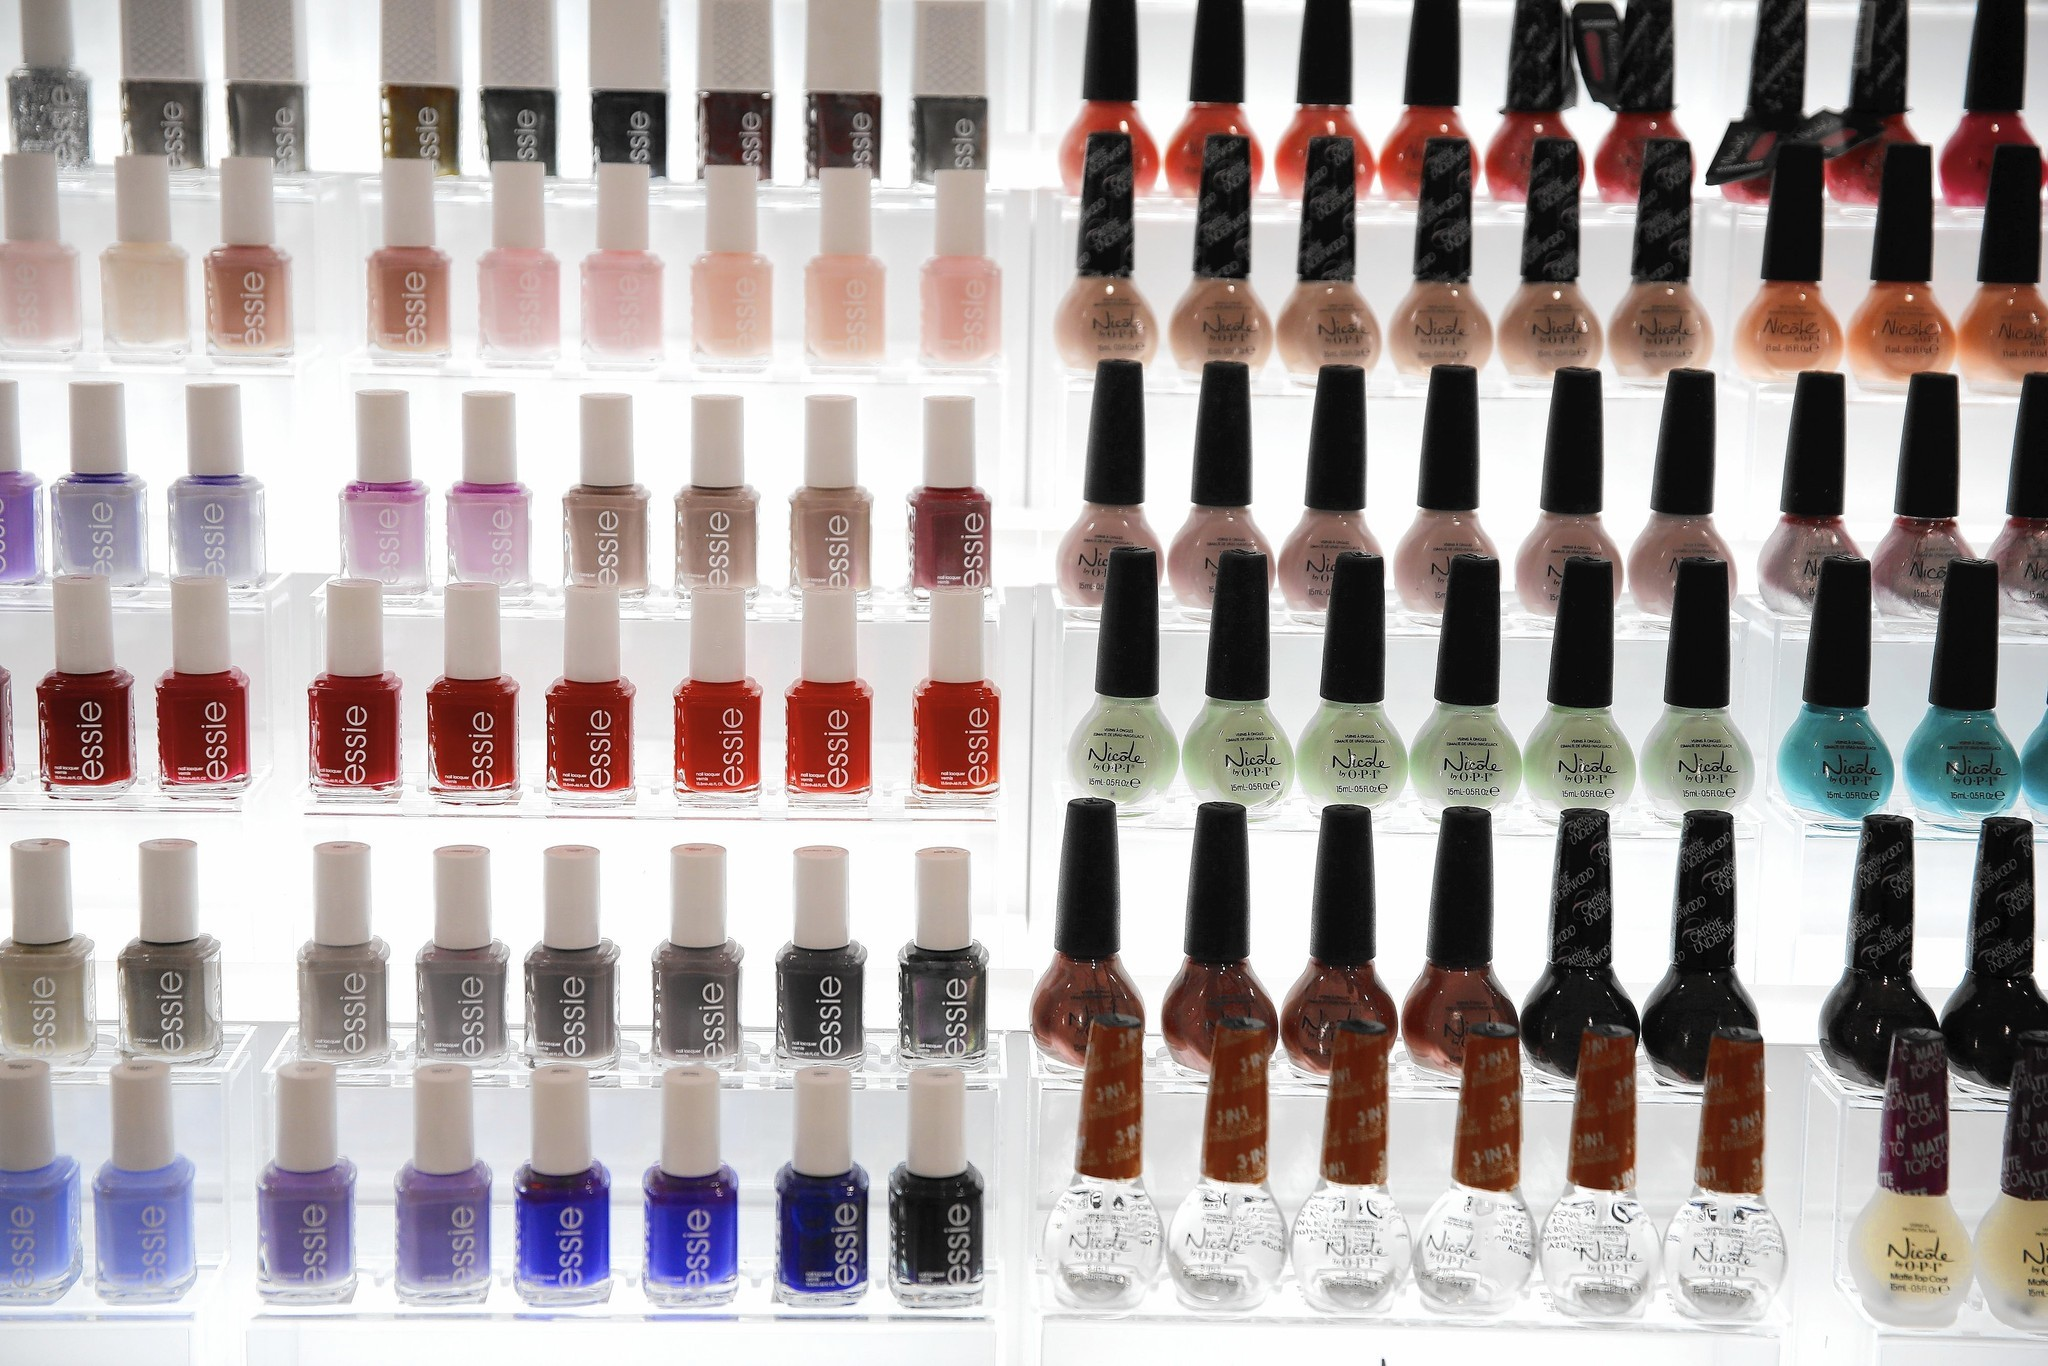 Triphenyl phosphate, found in 'eco-friendly' nail polish, spurs worries